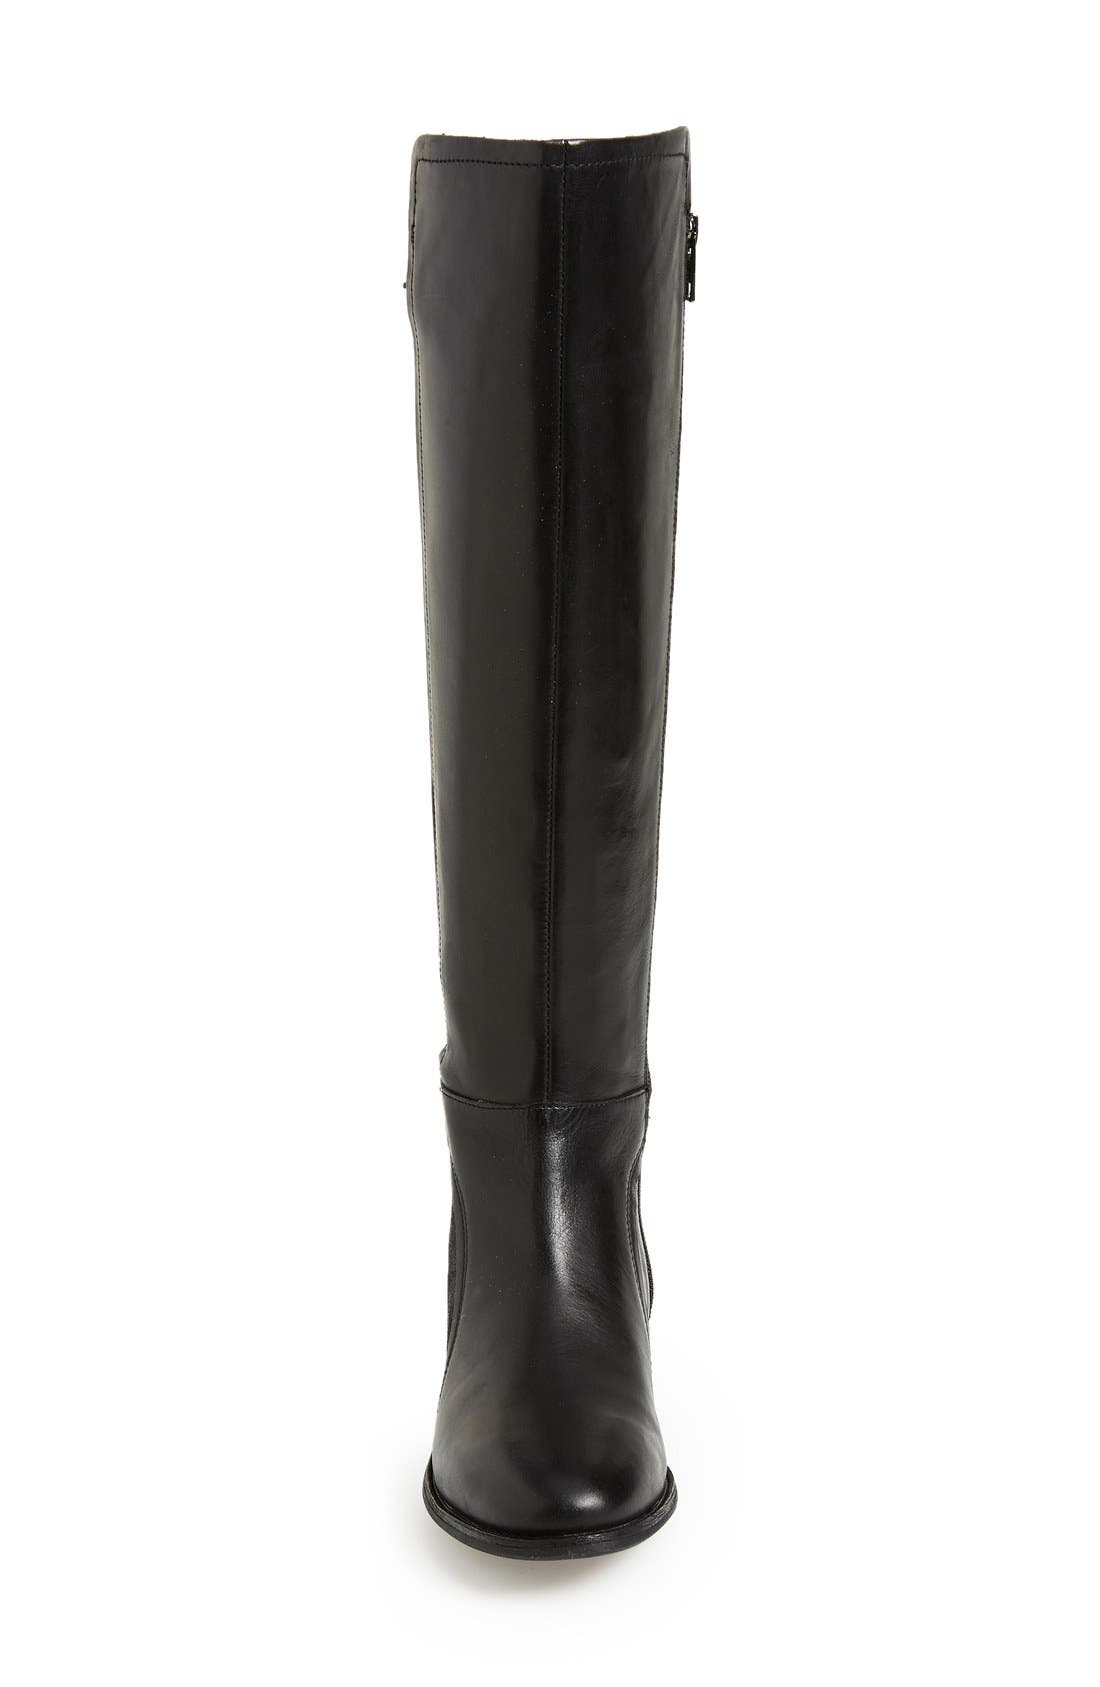 UGG<SUP>®</SUP>, Australia 'Danae' Riding Boot, Alternate thumbnail 3, color, 001